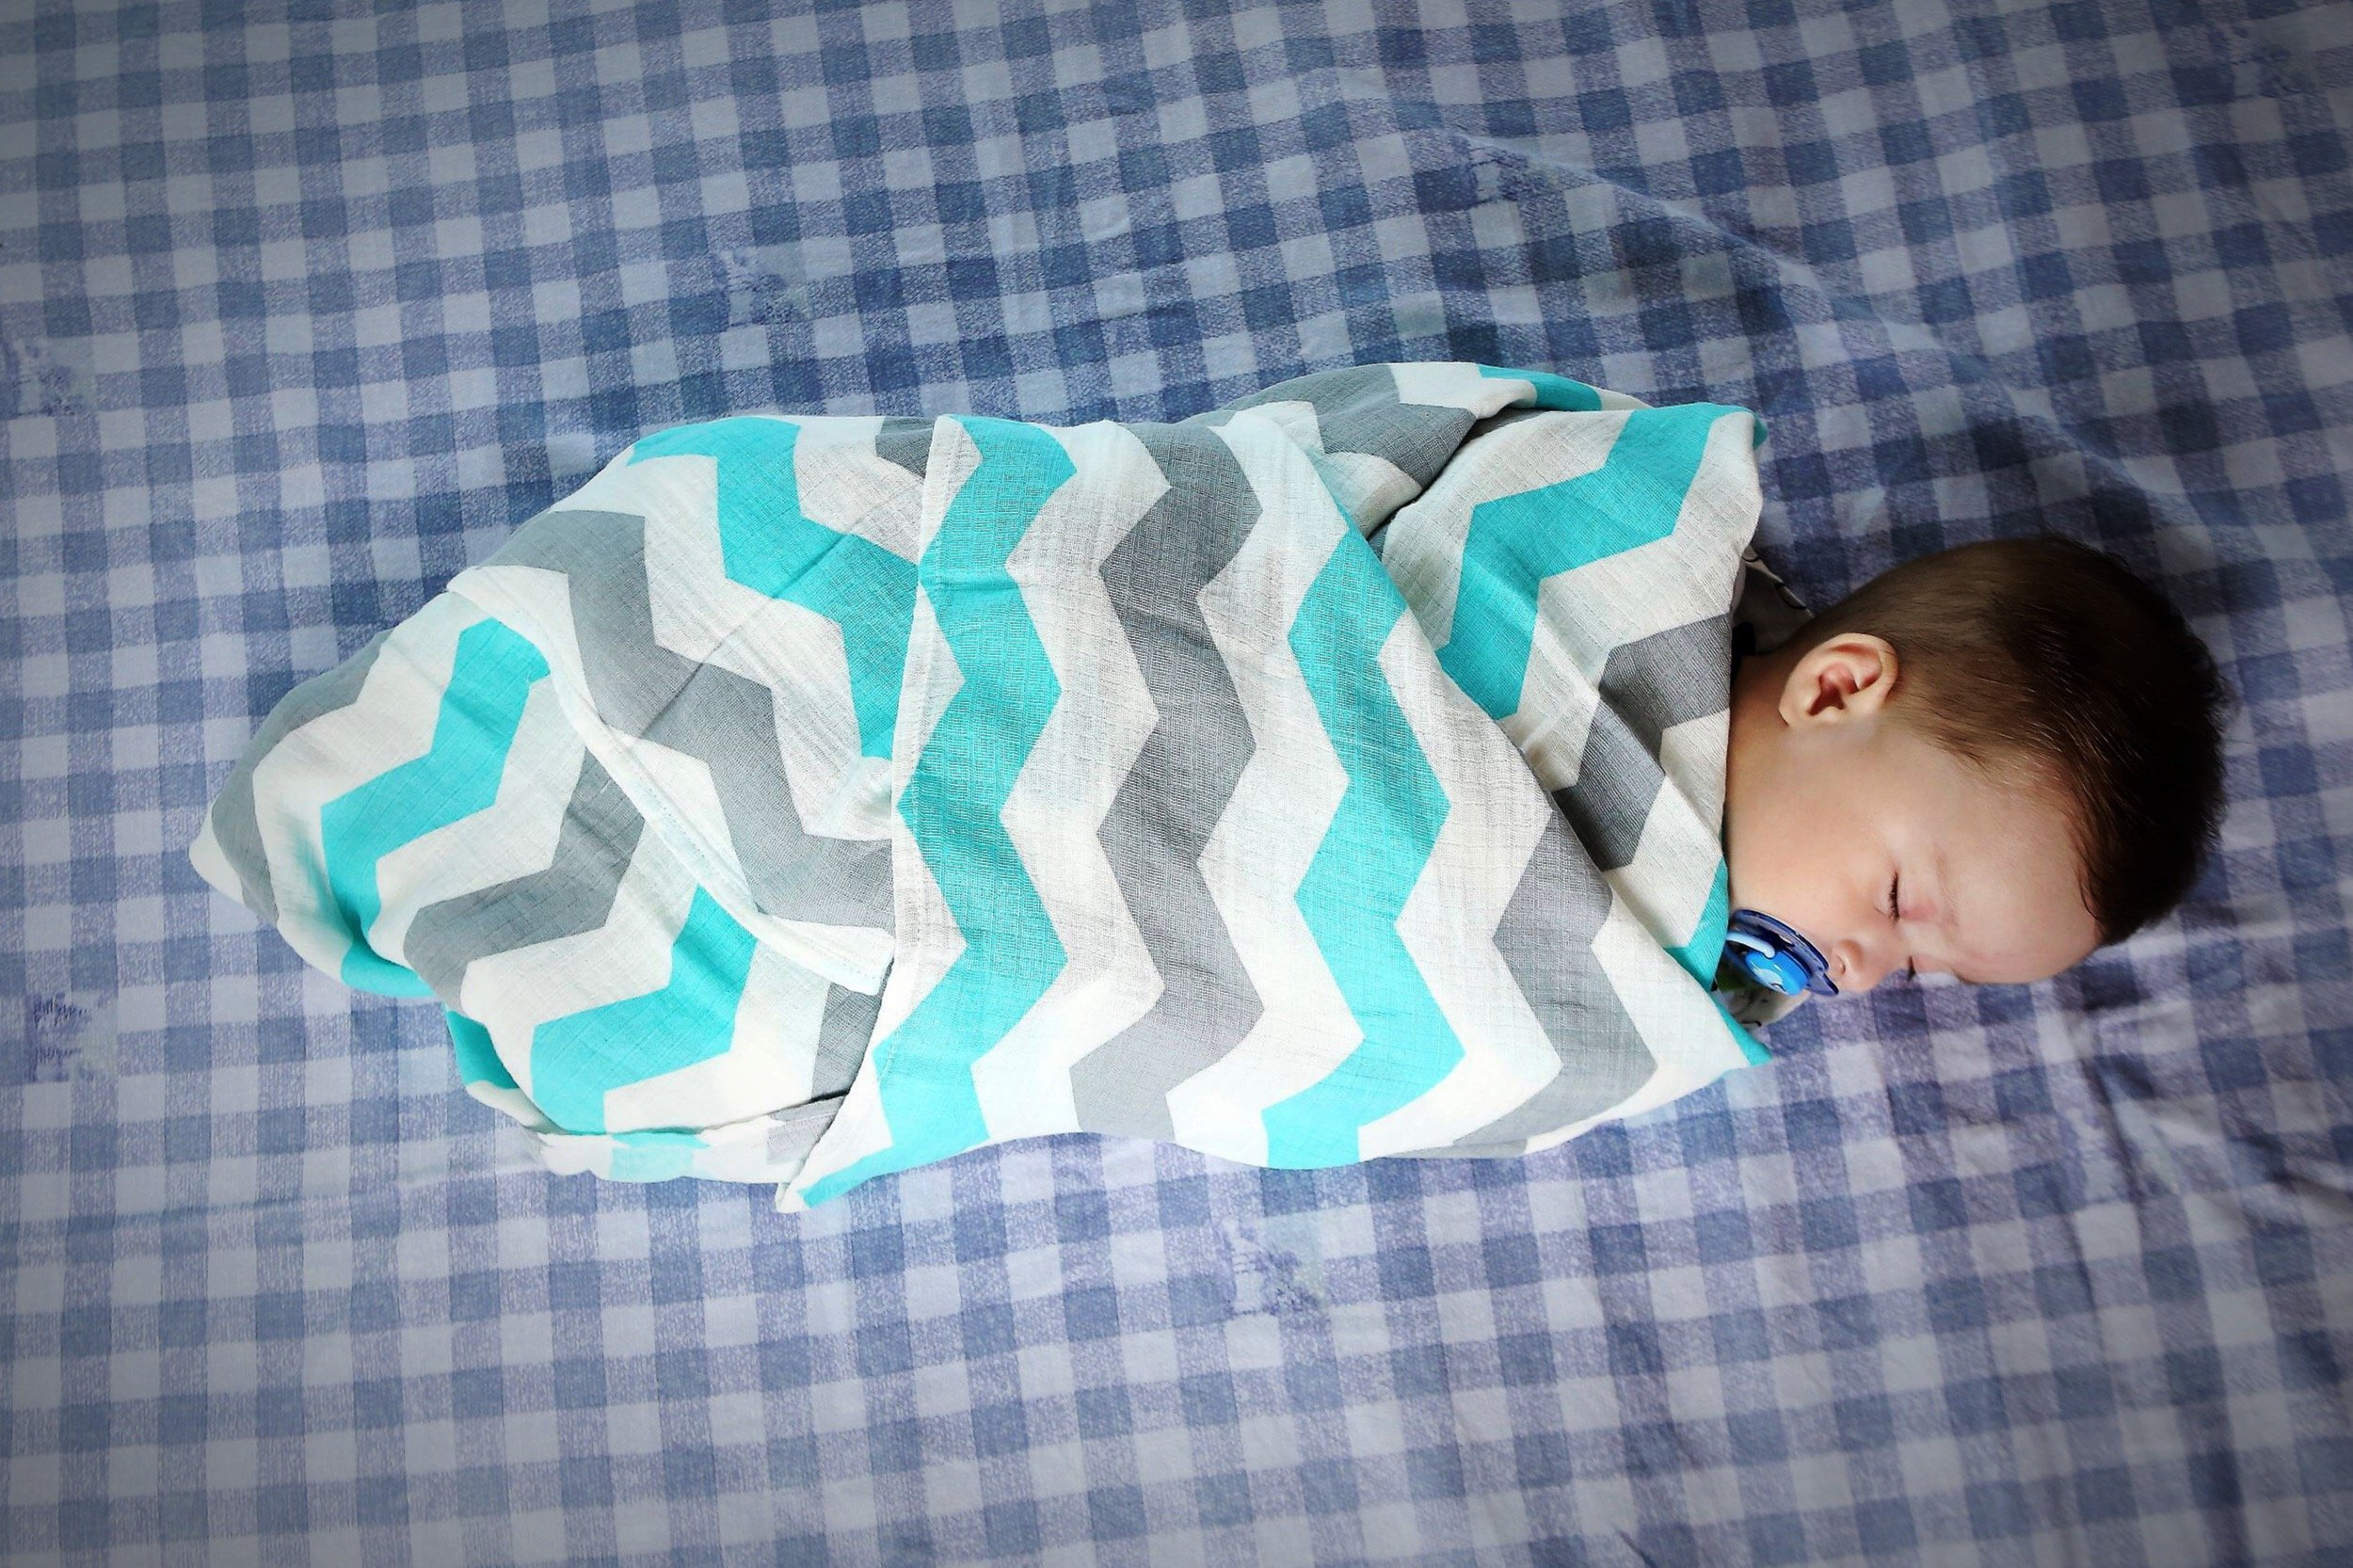 Muslin Swaddle Blankets - 100% Organic Cotton - 3 Pack 47'' x 47'' Ultrasoft and Hypoallergenic - Best Baby Shower Gift (Blue and Grey) by Green Wood (Image #4)